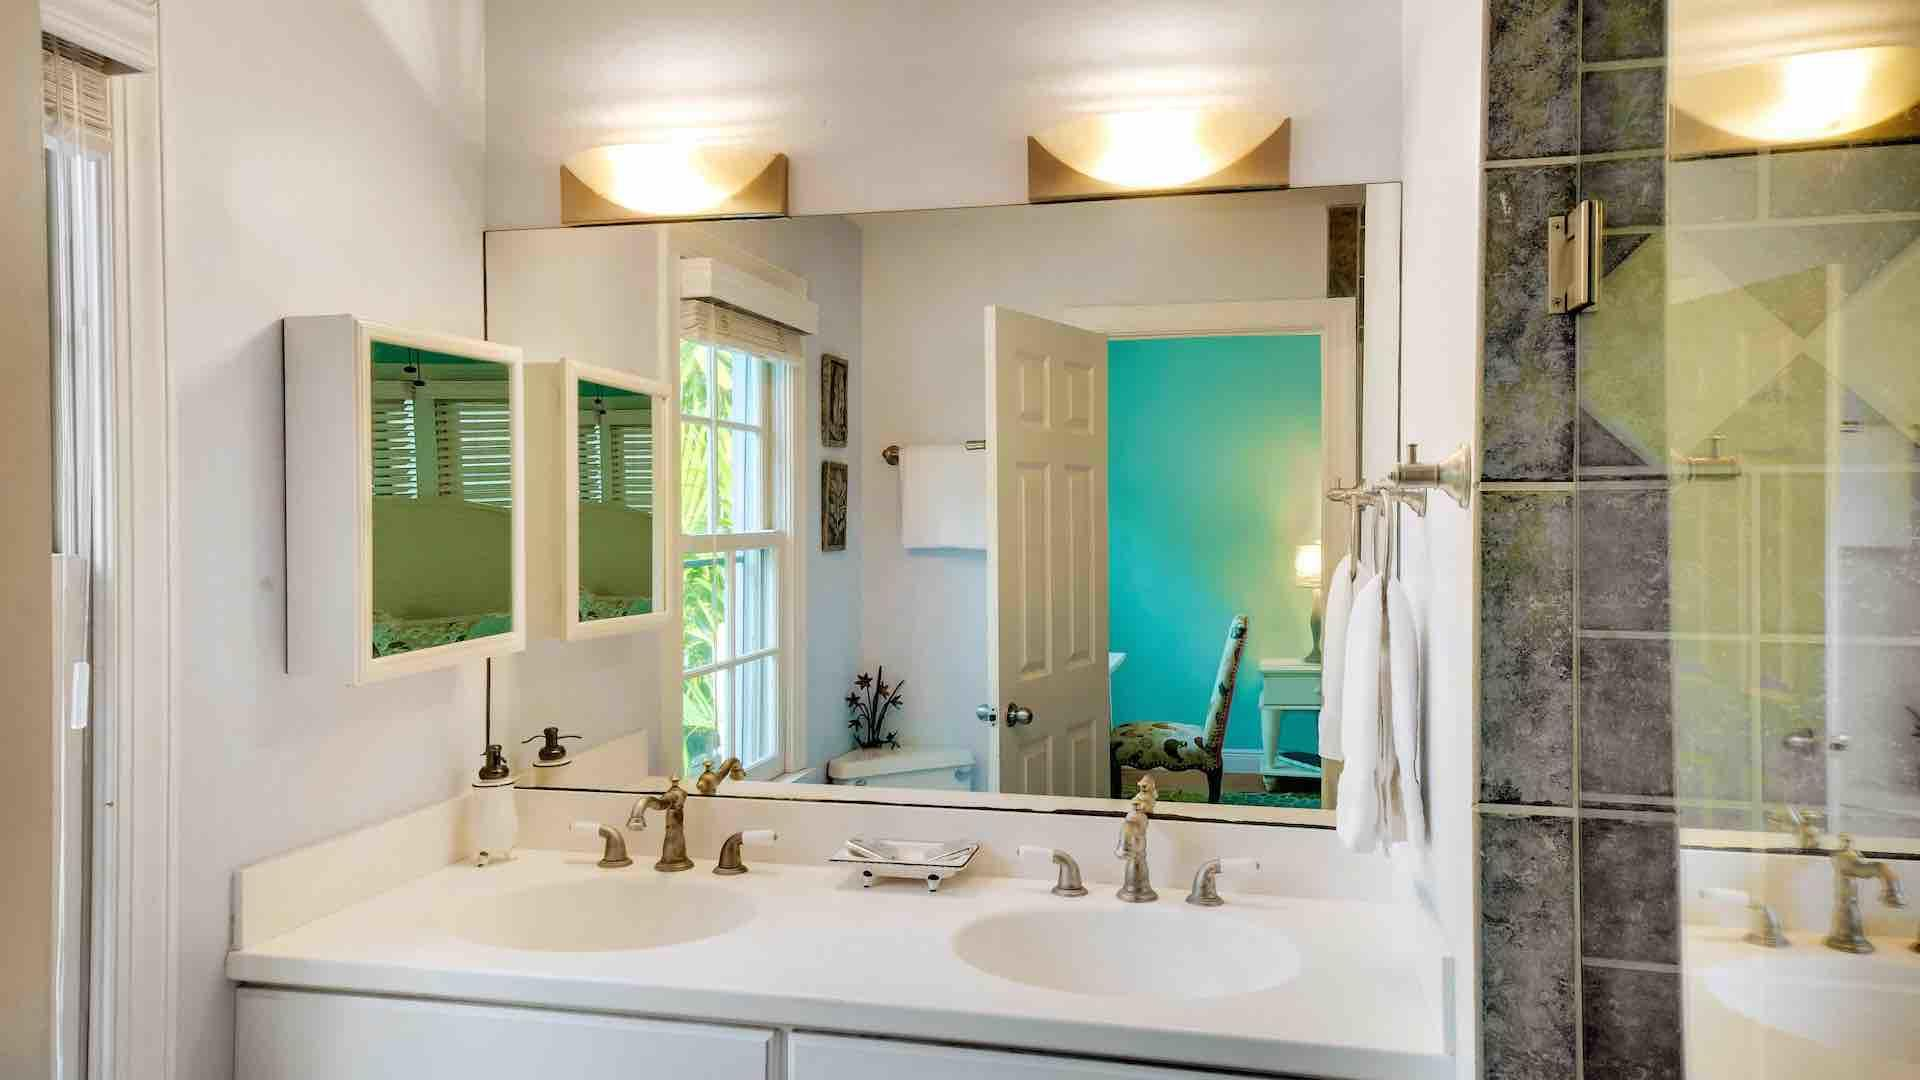 The first master bedroom has an ensuite bathroom with twin vanities...